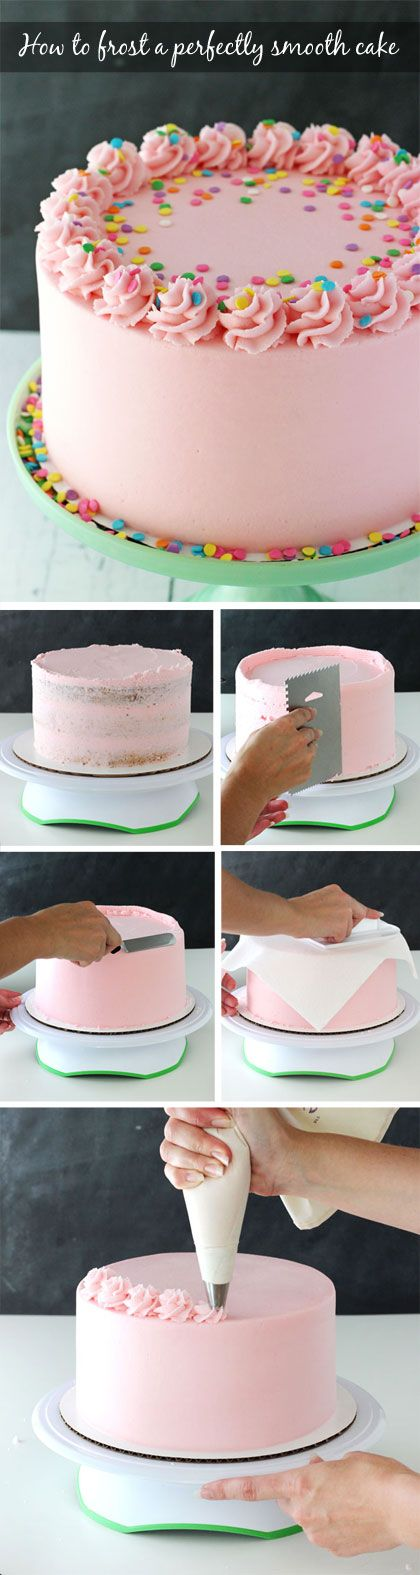 Tutorial for how to frost a perfectly smooth cake with buttercream icing. Images and animated gifs with detailed instructions.